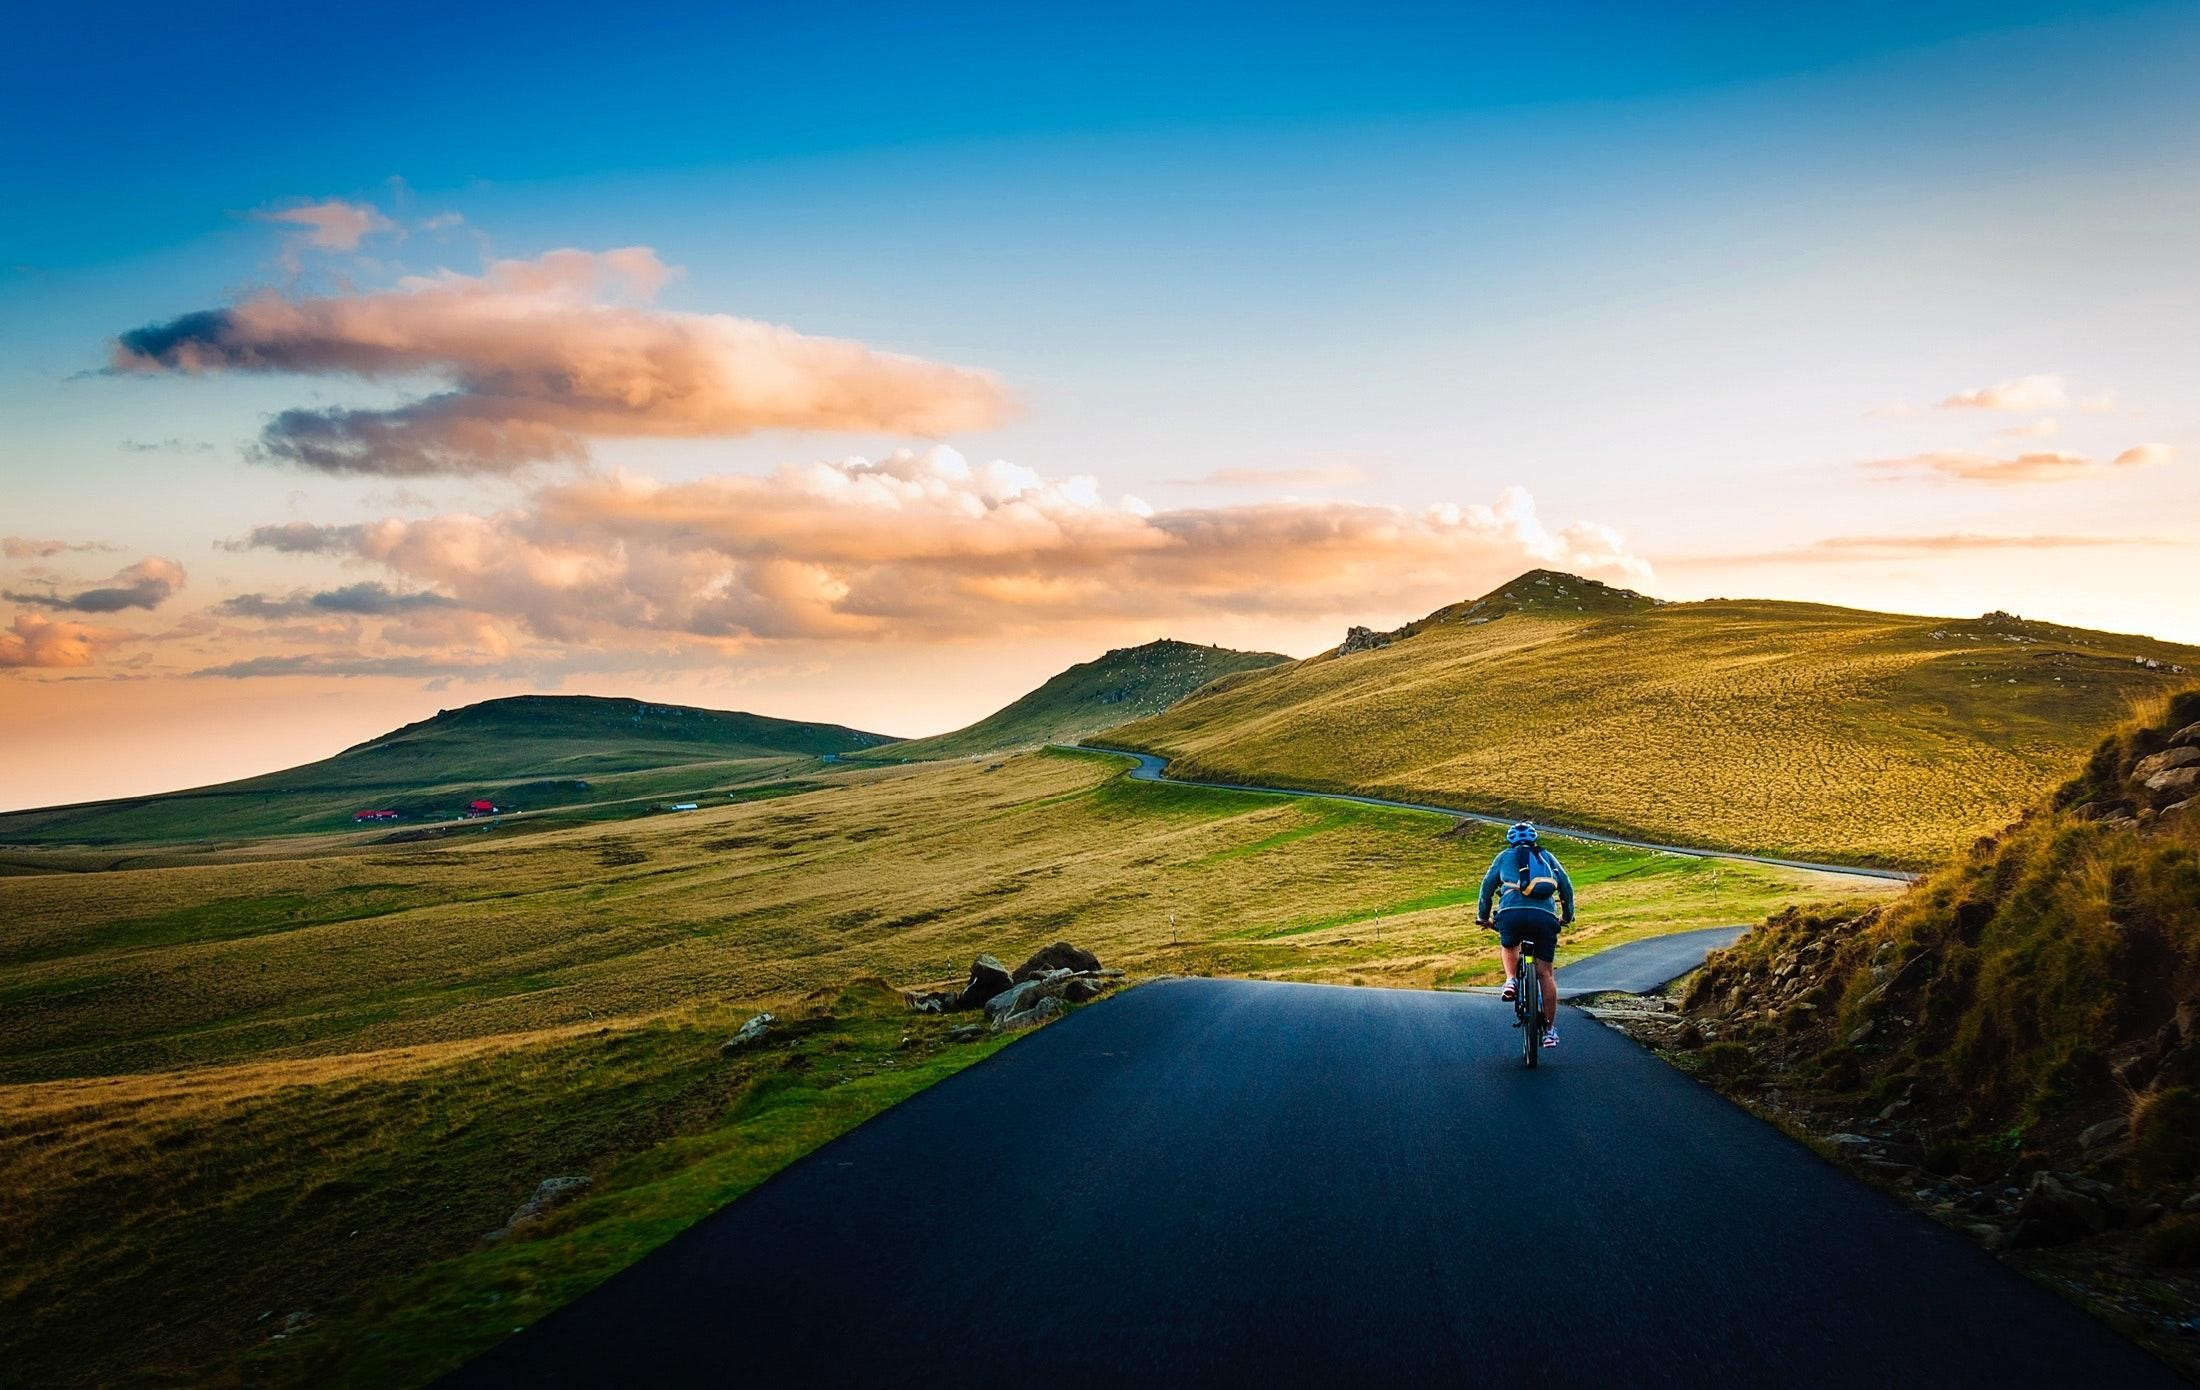 Alternative ways to explore the Brecon Beacons